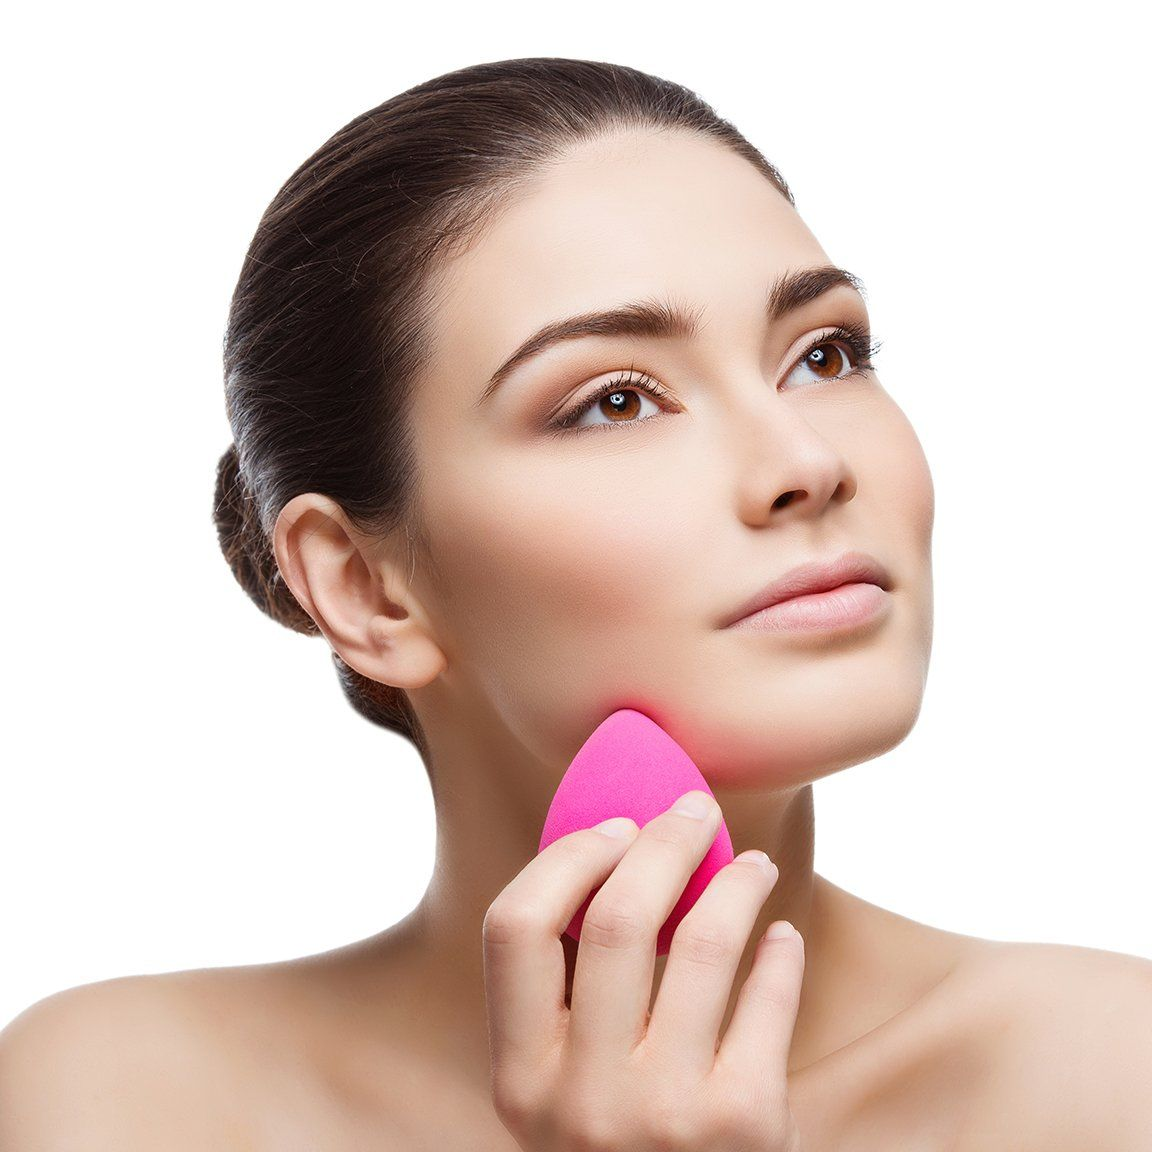 How to Apply Foundation on Face A Step by Step Tutorial